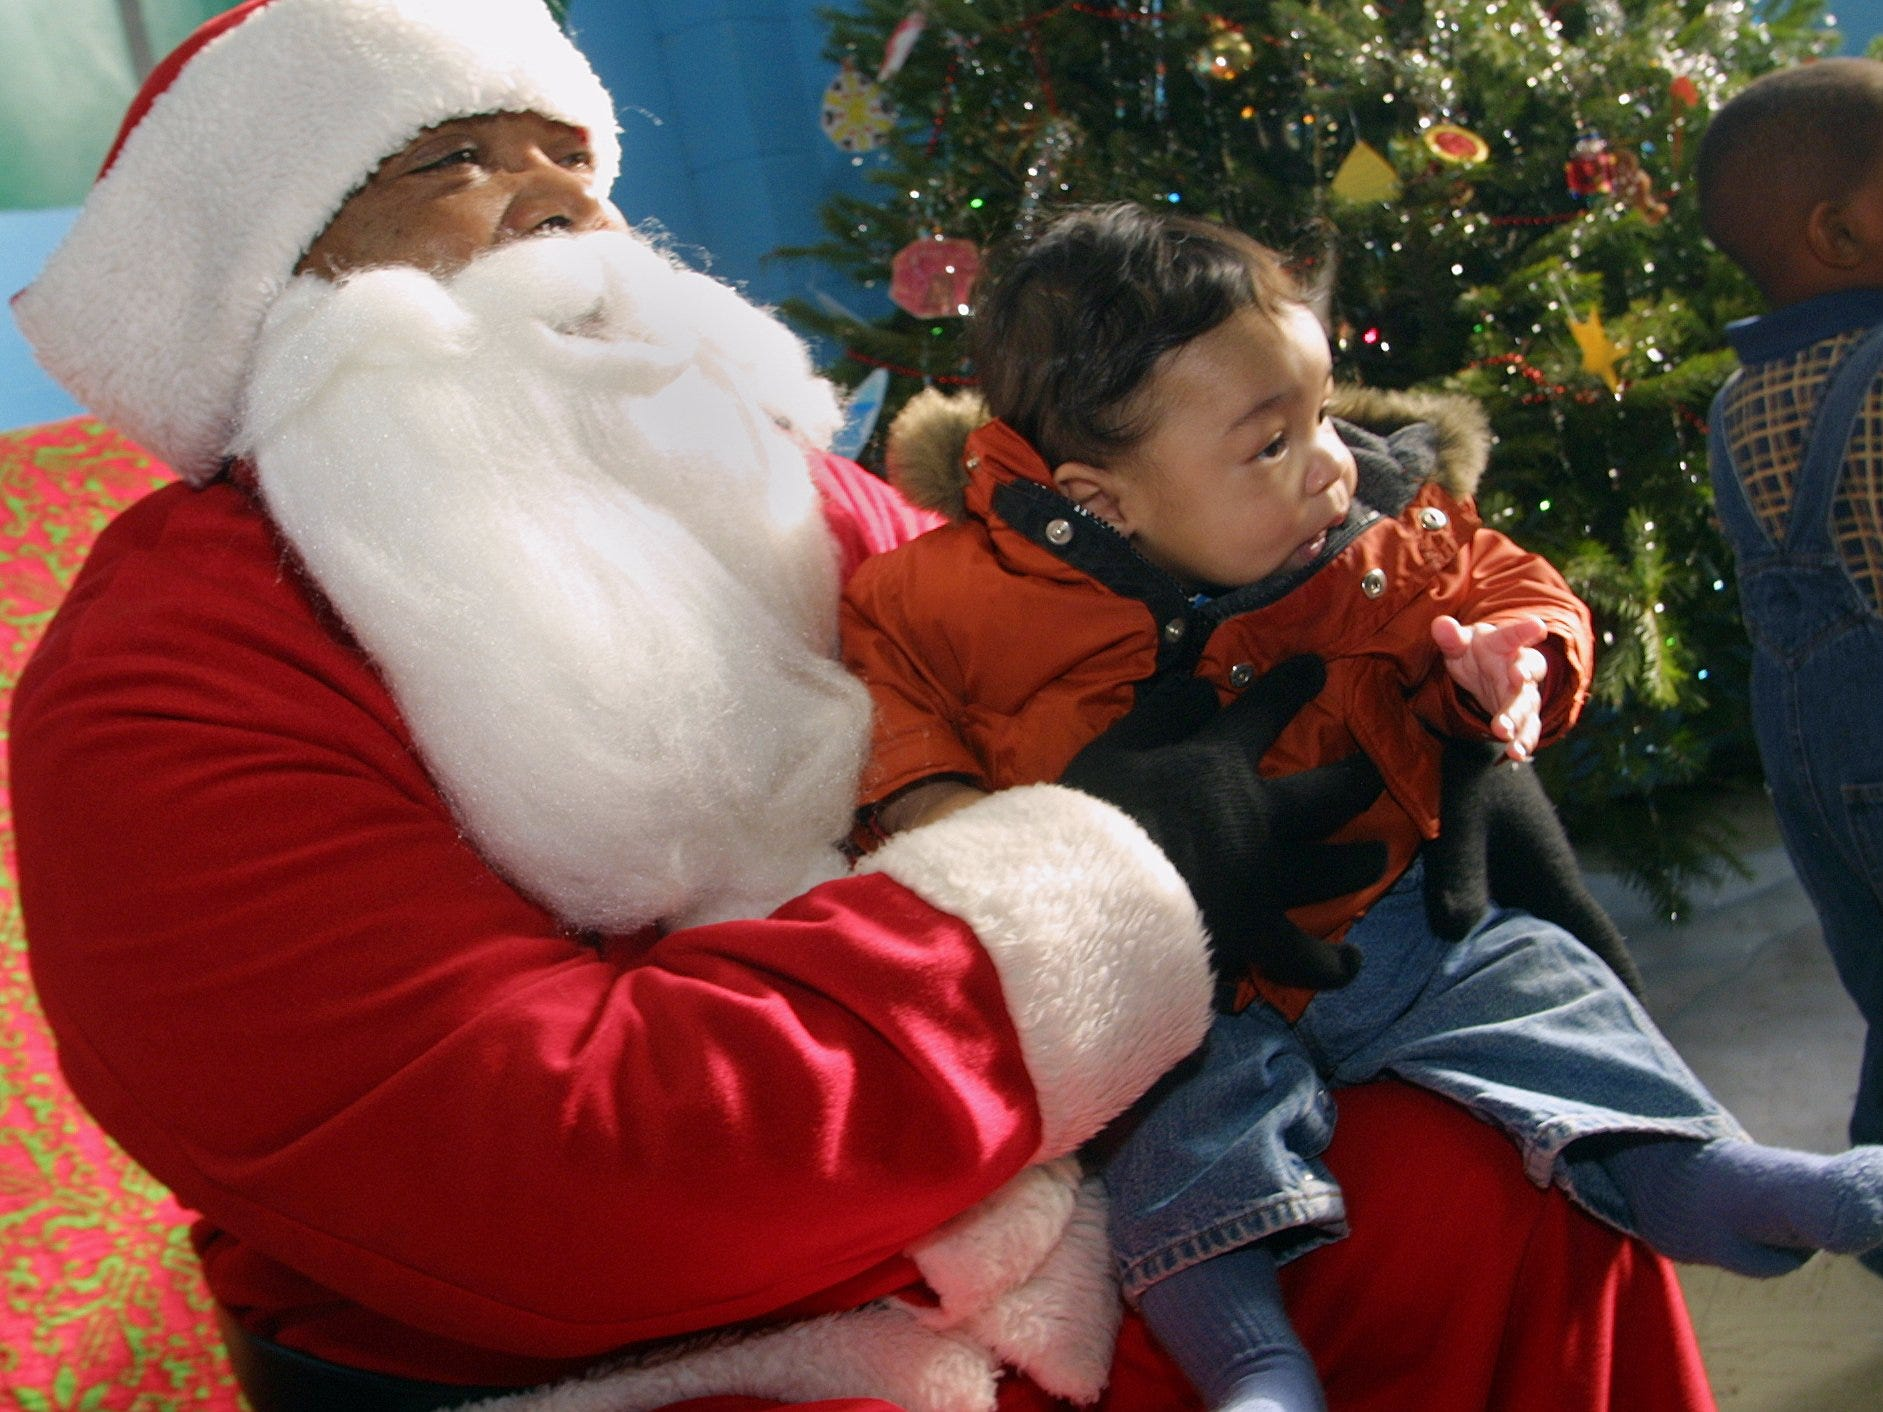 12/14/2003, 6C:    William Blye III, age 4 1/2 months, of Elmira visits Santa Claus, sometines known as Duane Johnson, during a Christmas party at the Ernie Davis Community Center on Saturday December 13, 2003.